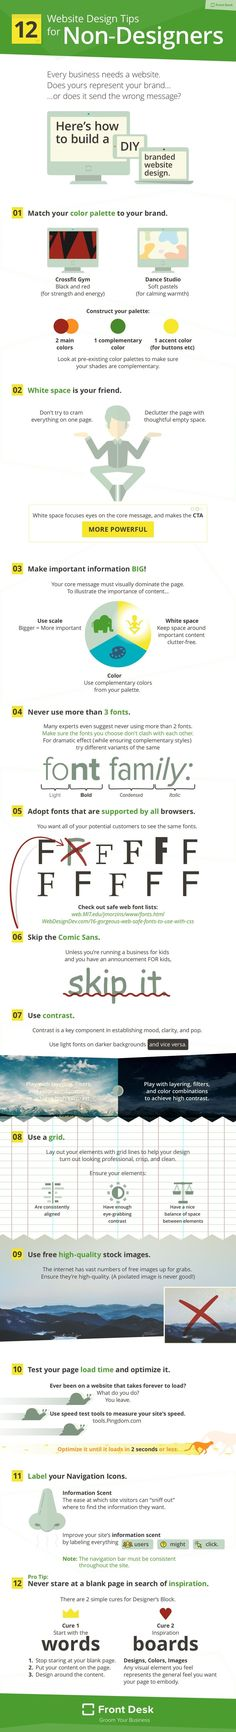 Building Your Own Website? 12 Simple Web Design Tips for Non-Designers [Infographic]